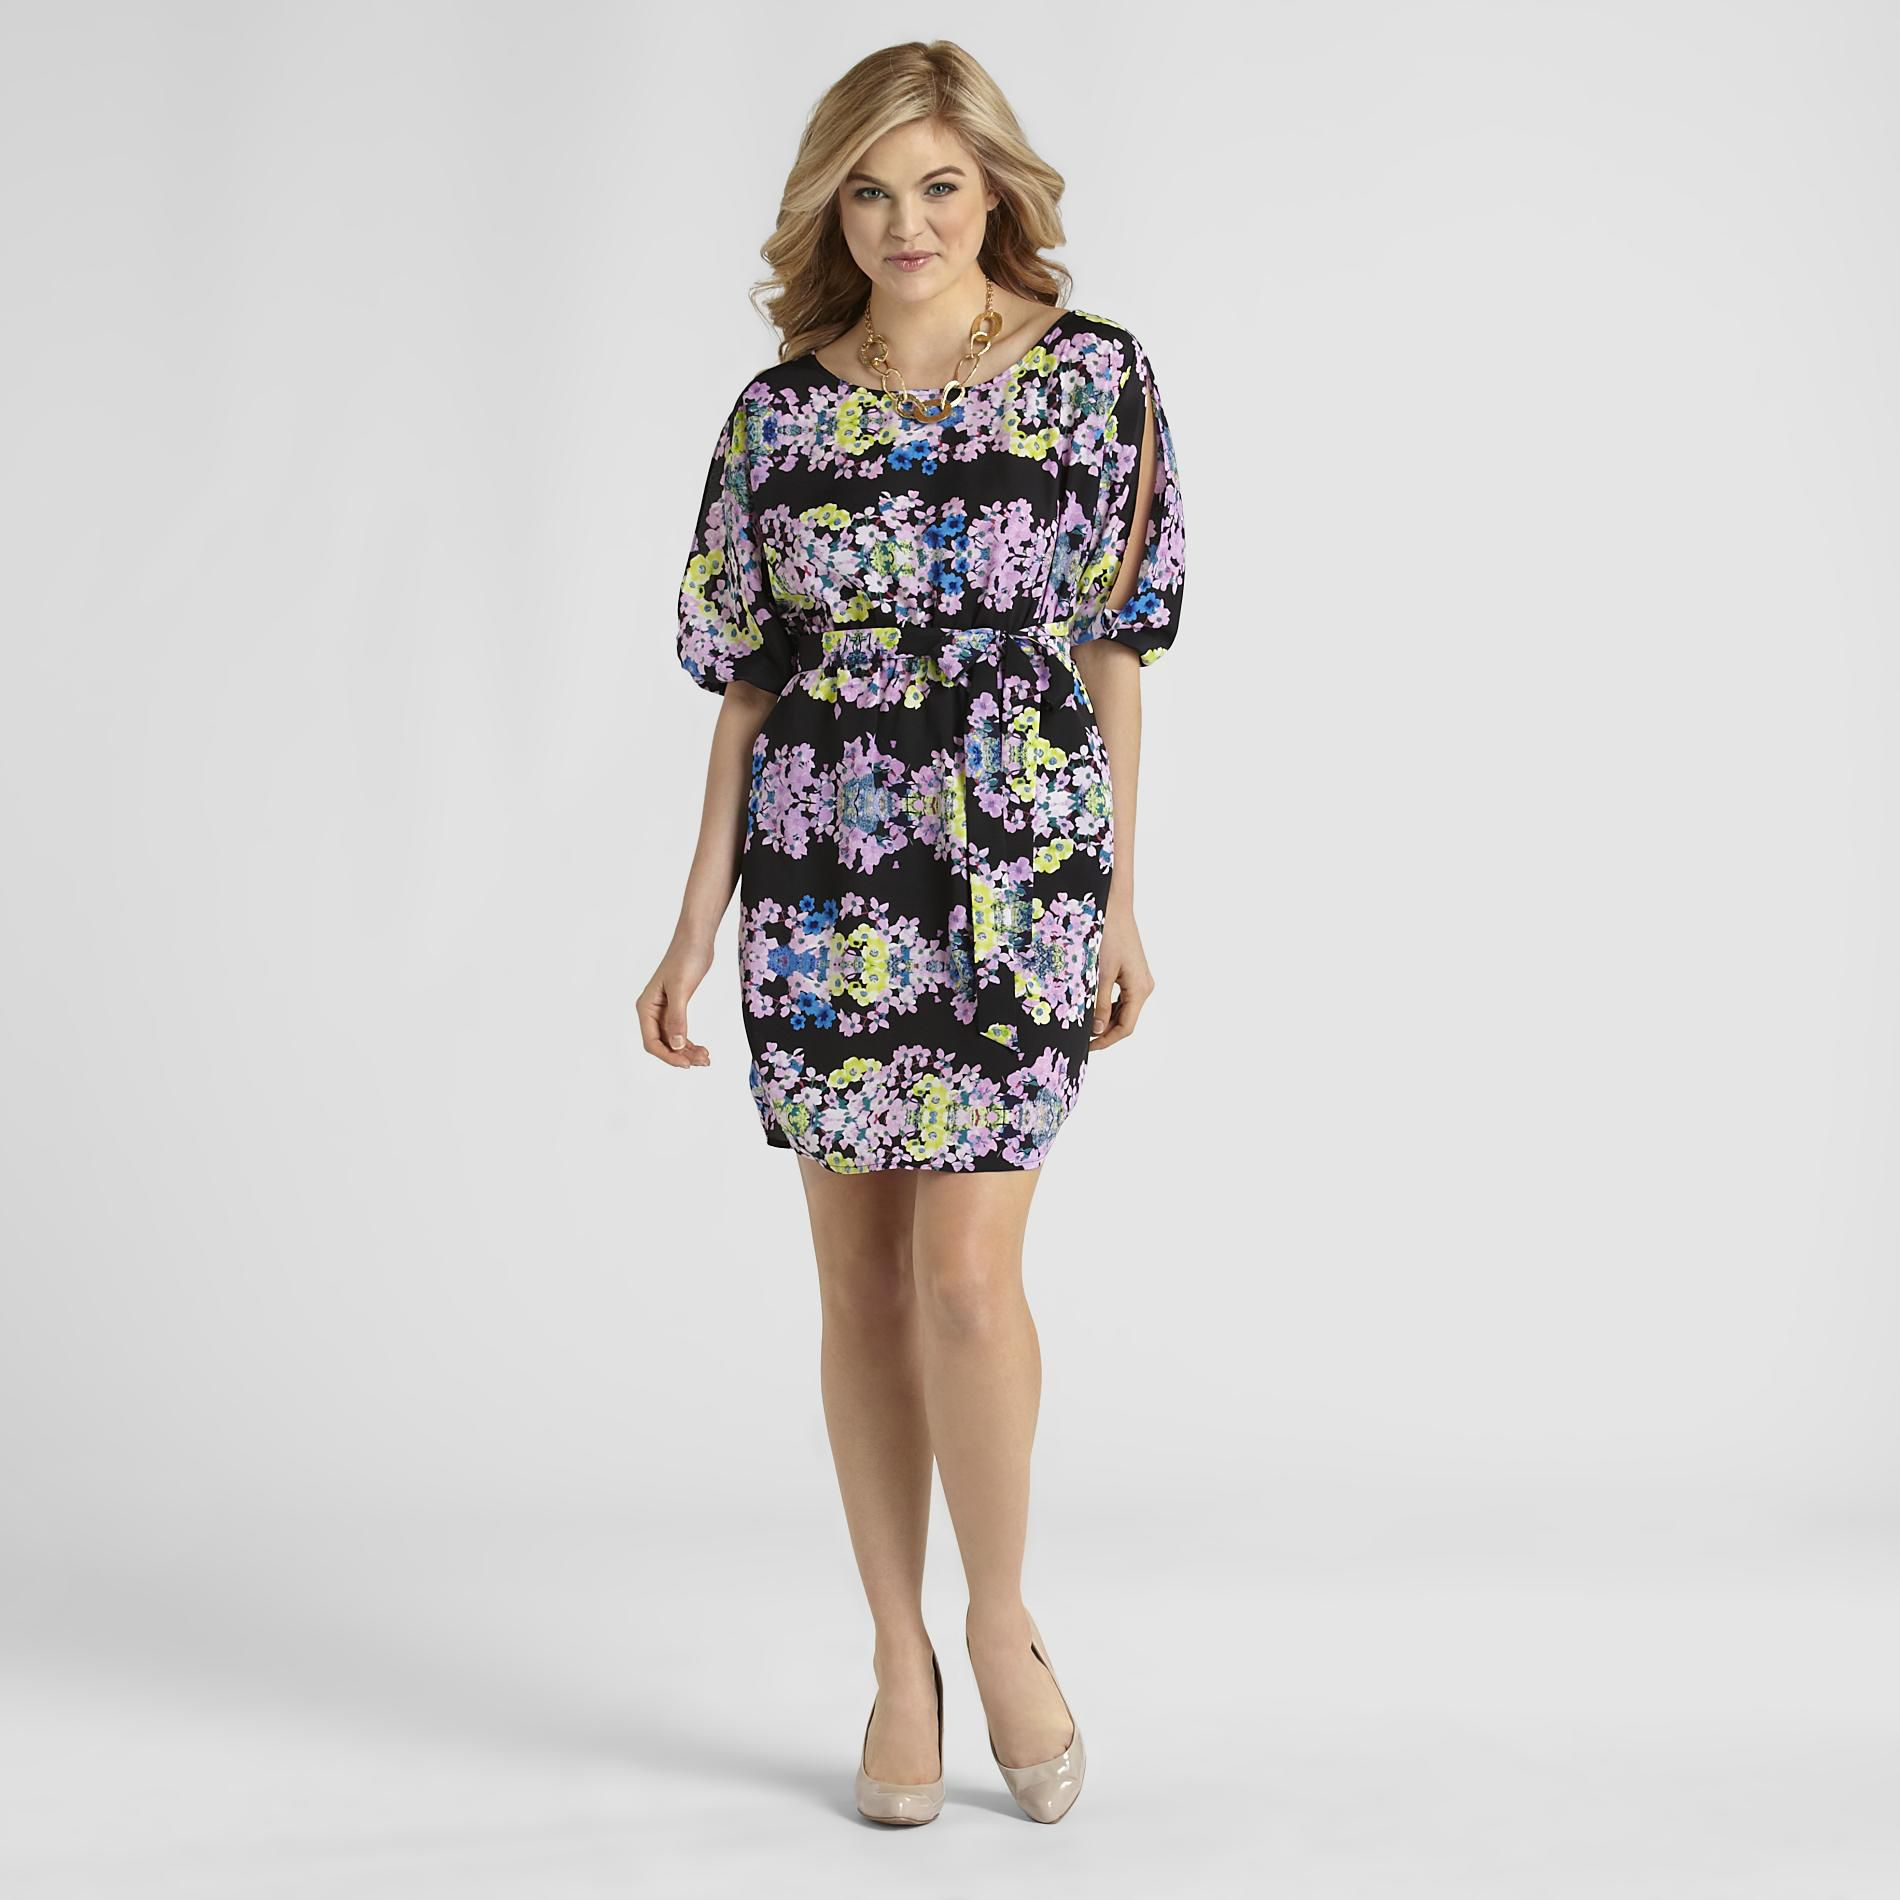 Attention Women's Dolman Dress - Floral